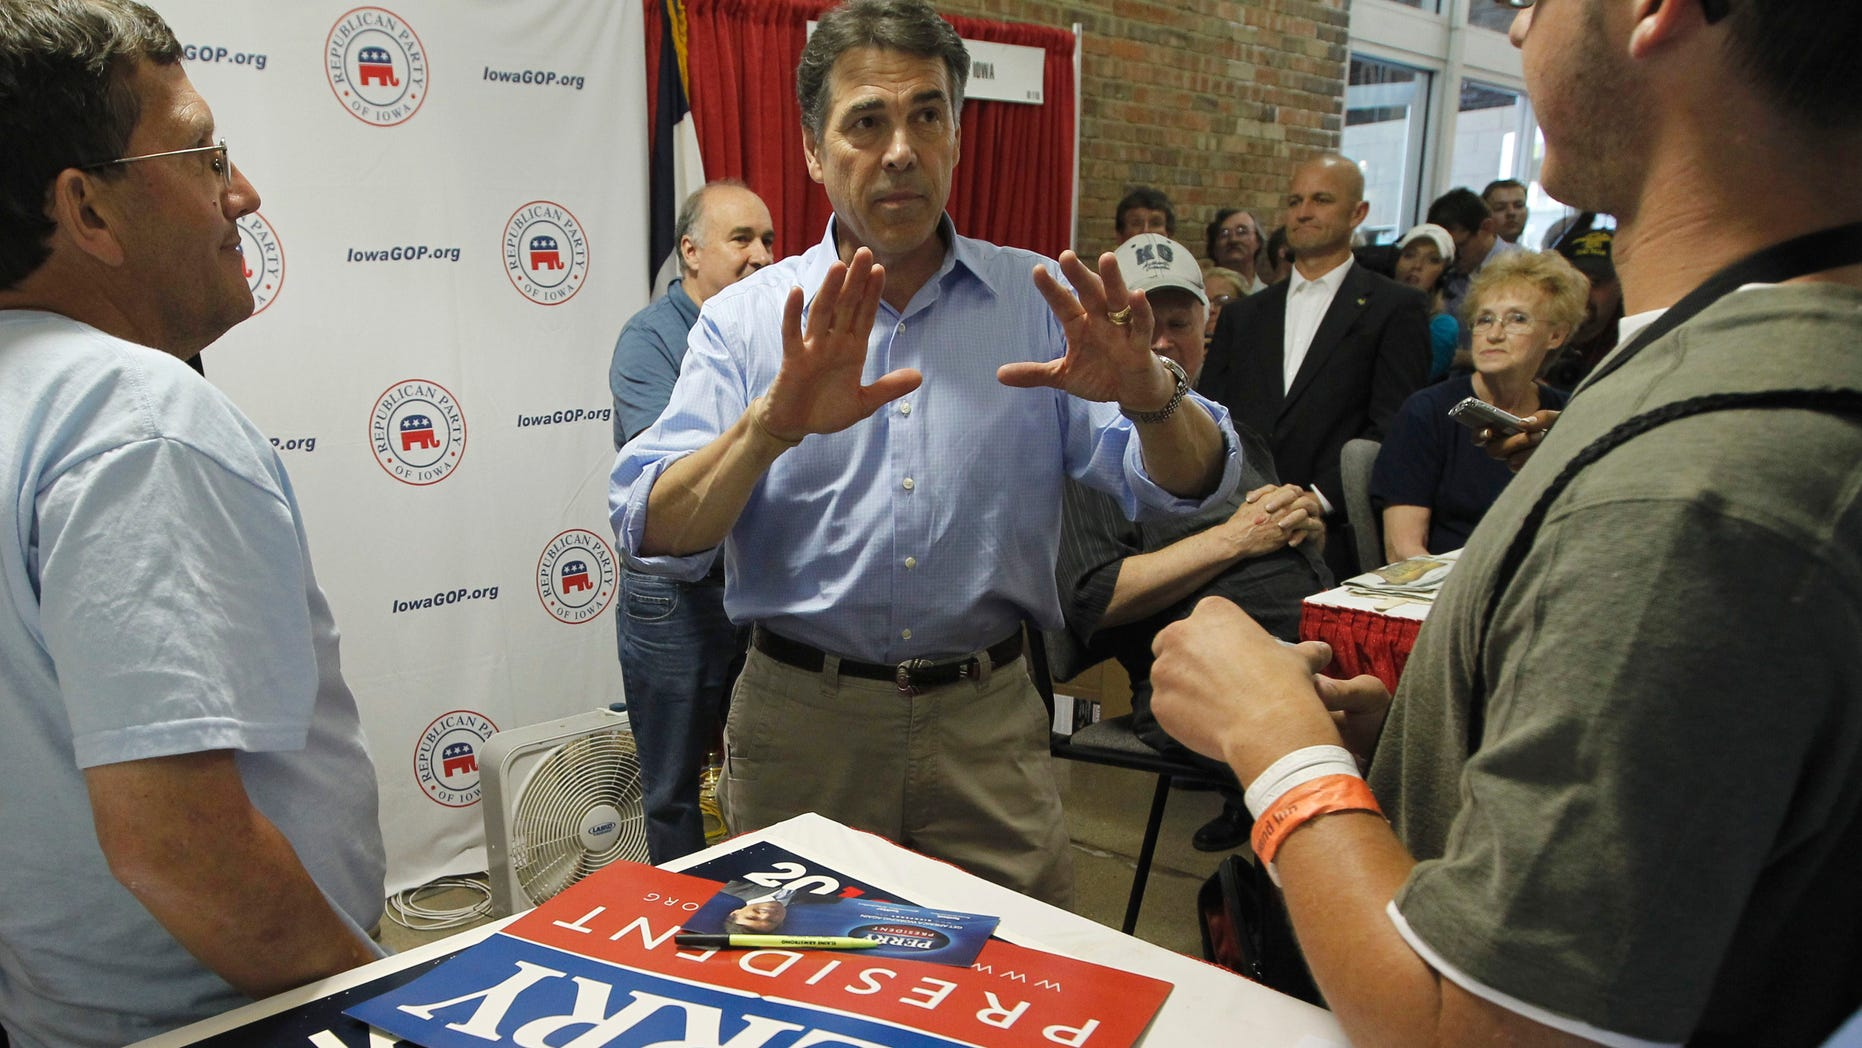 August 15: Flyers for Rep. Michele Bachmann, R-Minn. and former Alaska Gov. Sarah Palin can be seen on the table as Republican presidential candidate, Texas Gov. Rick Perry visits the Iowa GOP Booth at the Iowa State Fair in Des Moines.